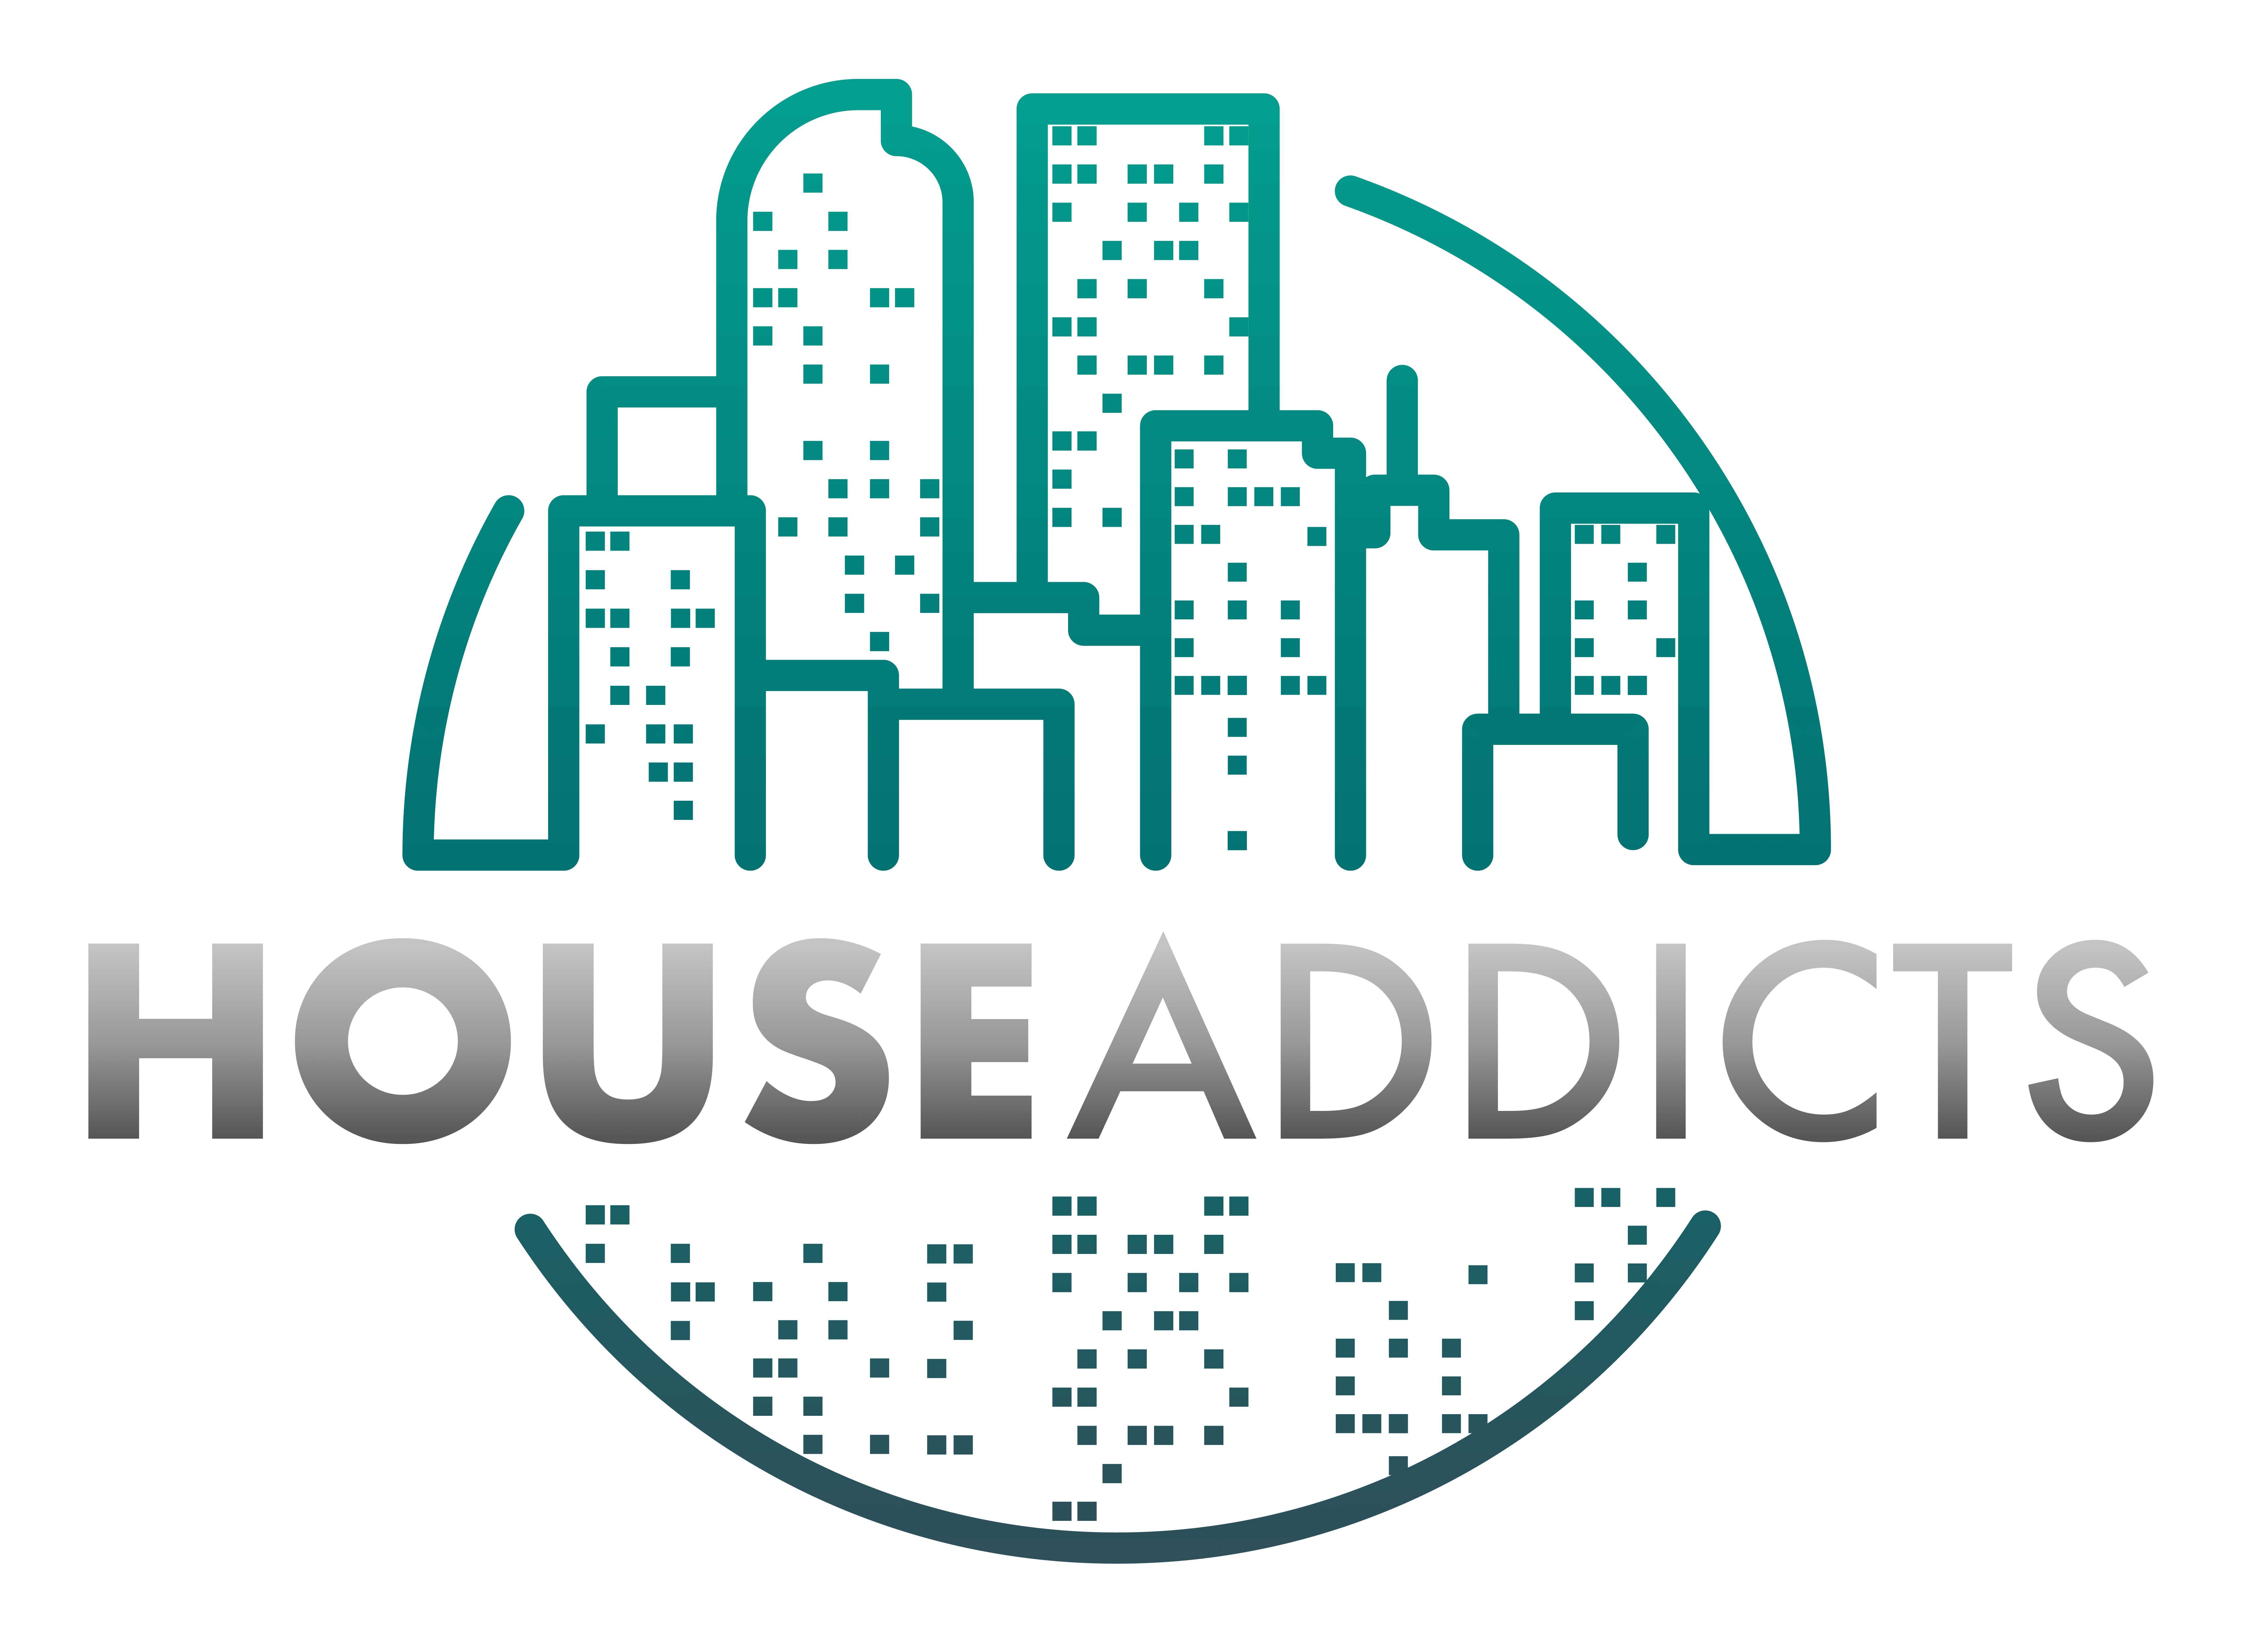 House Addicts | eXp Realty